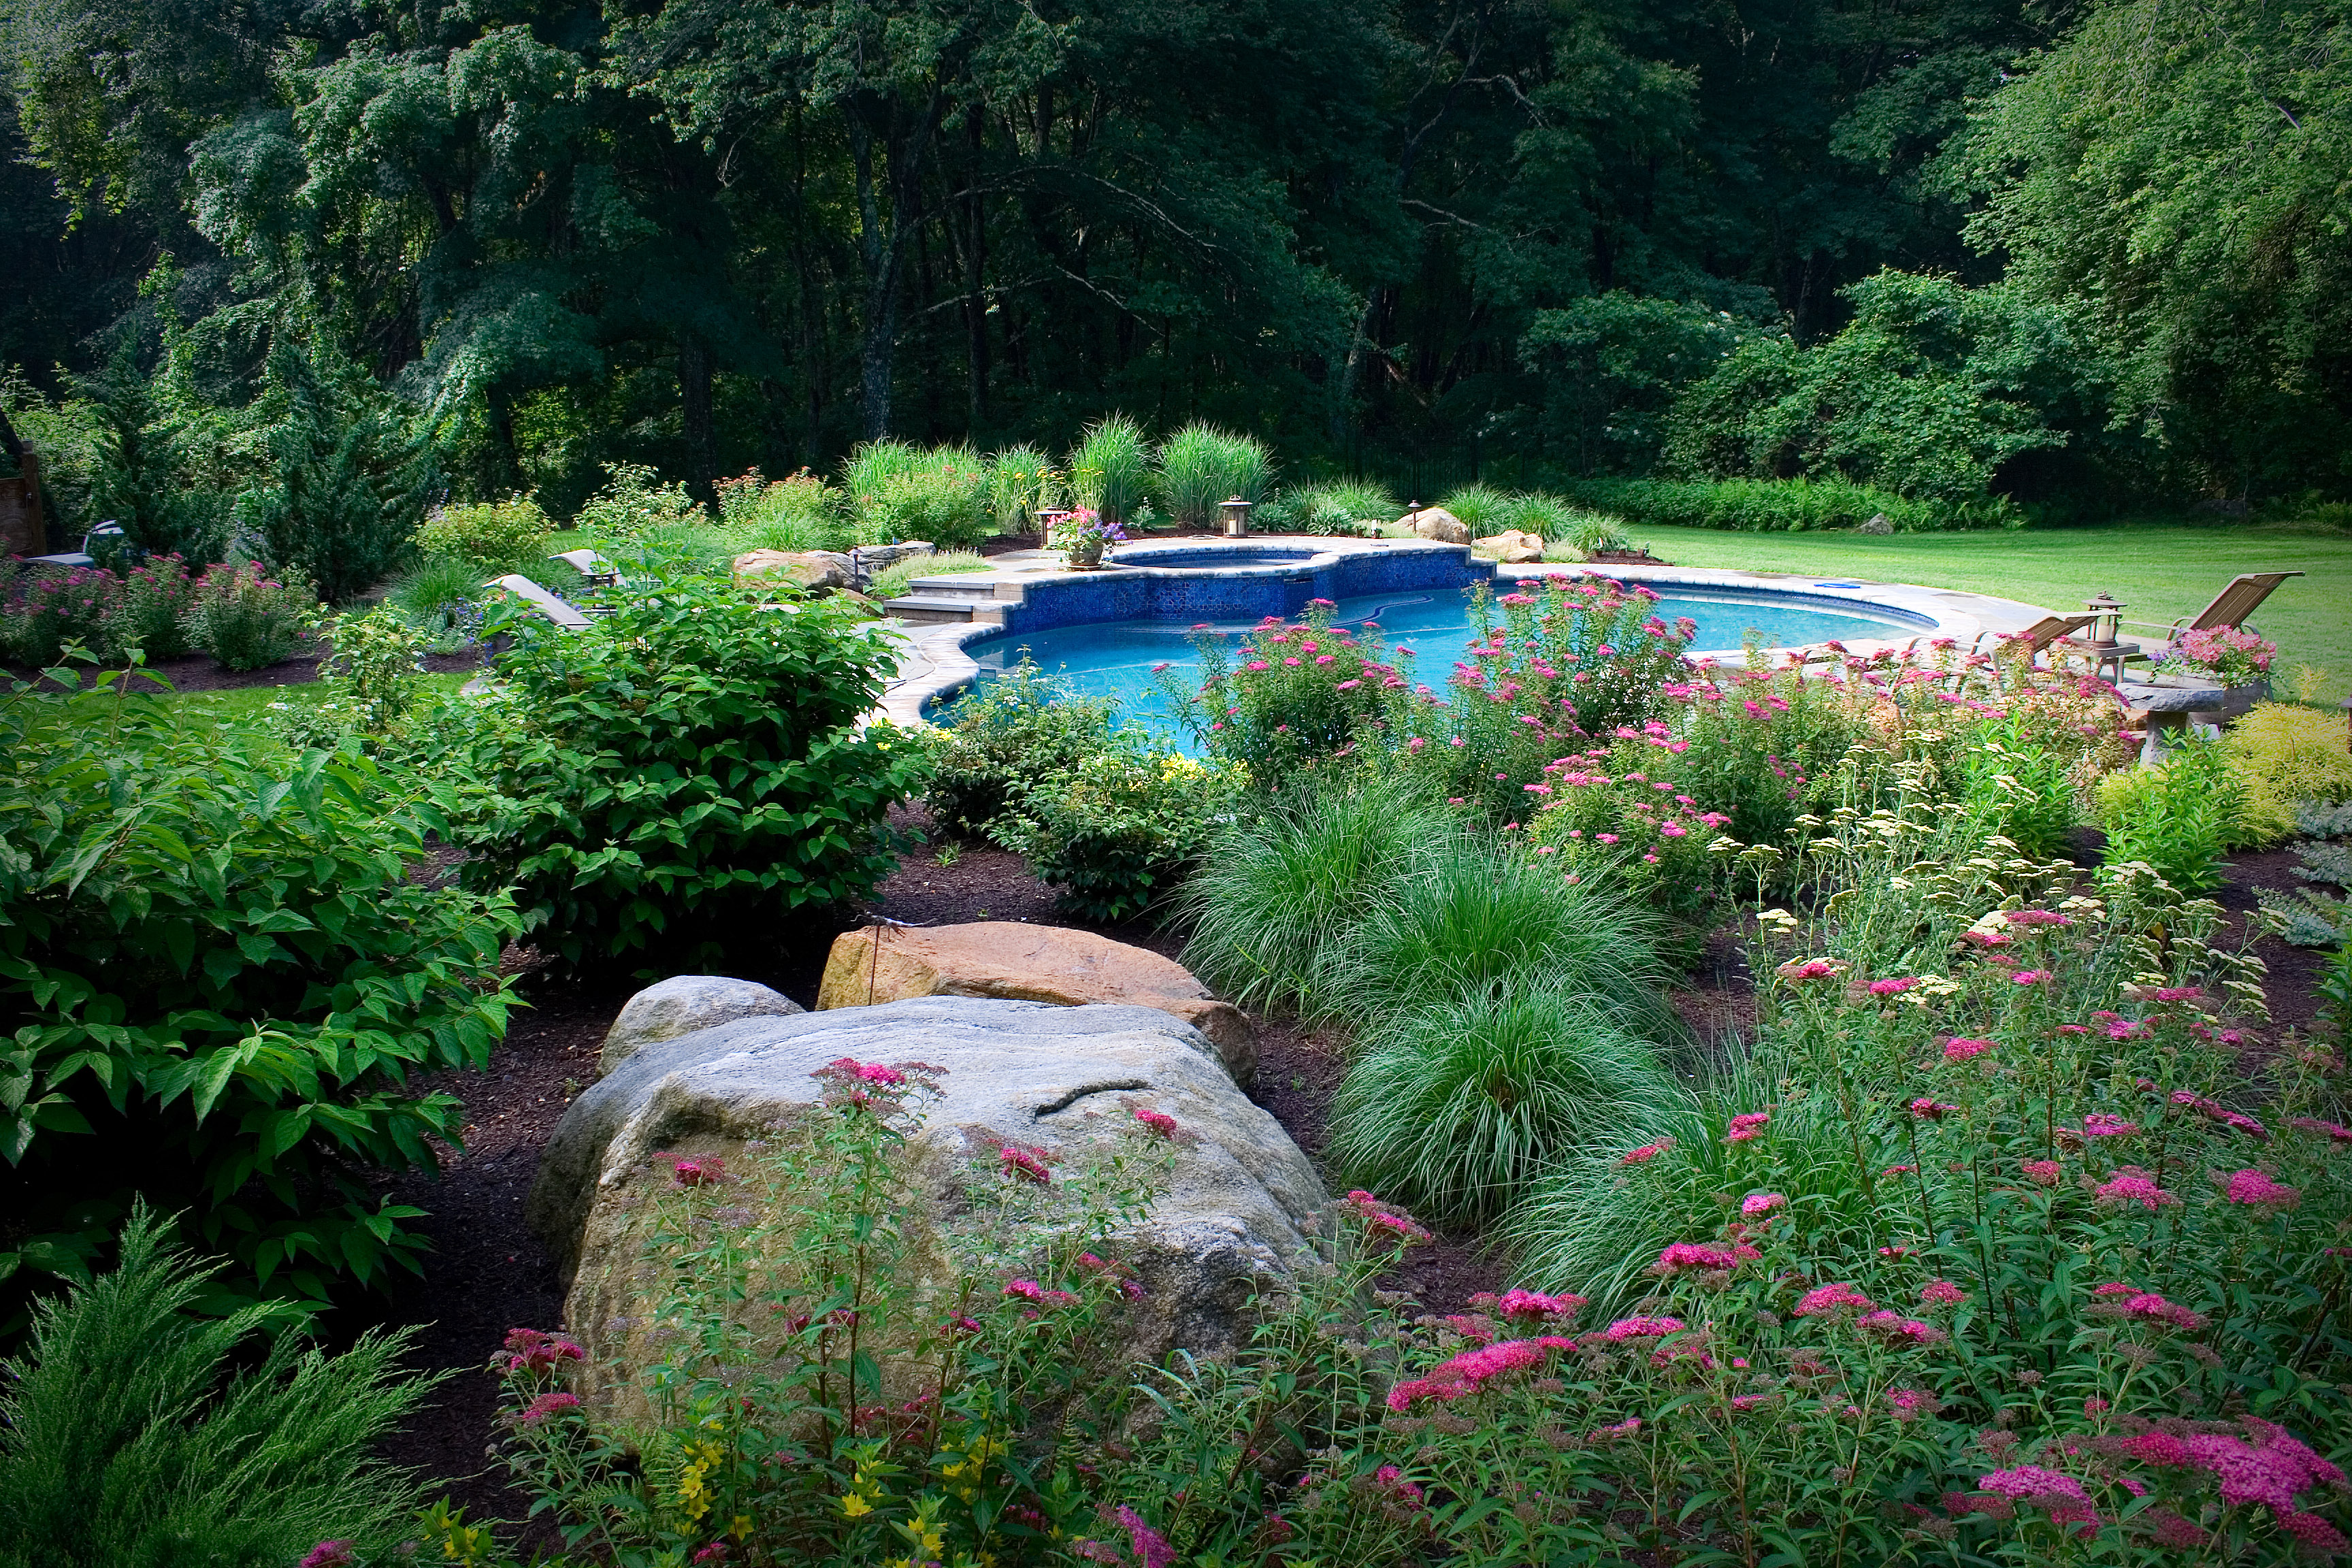 Constructed Pool with Natural Boulders